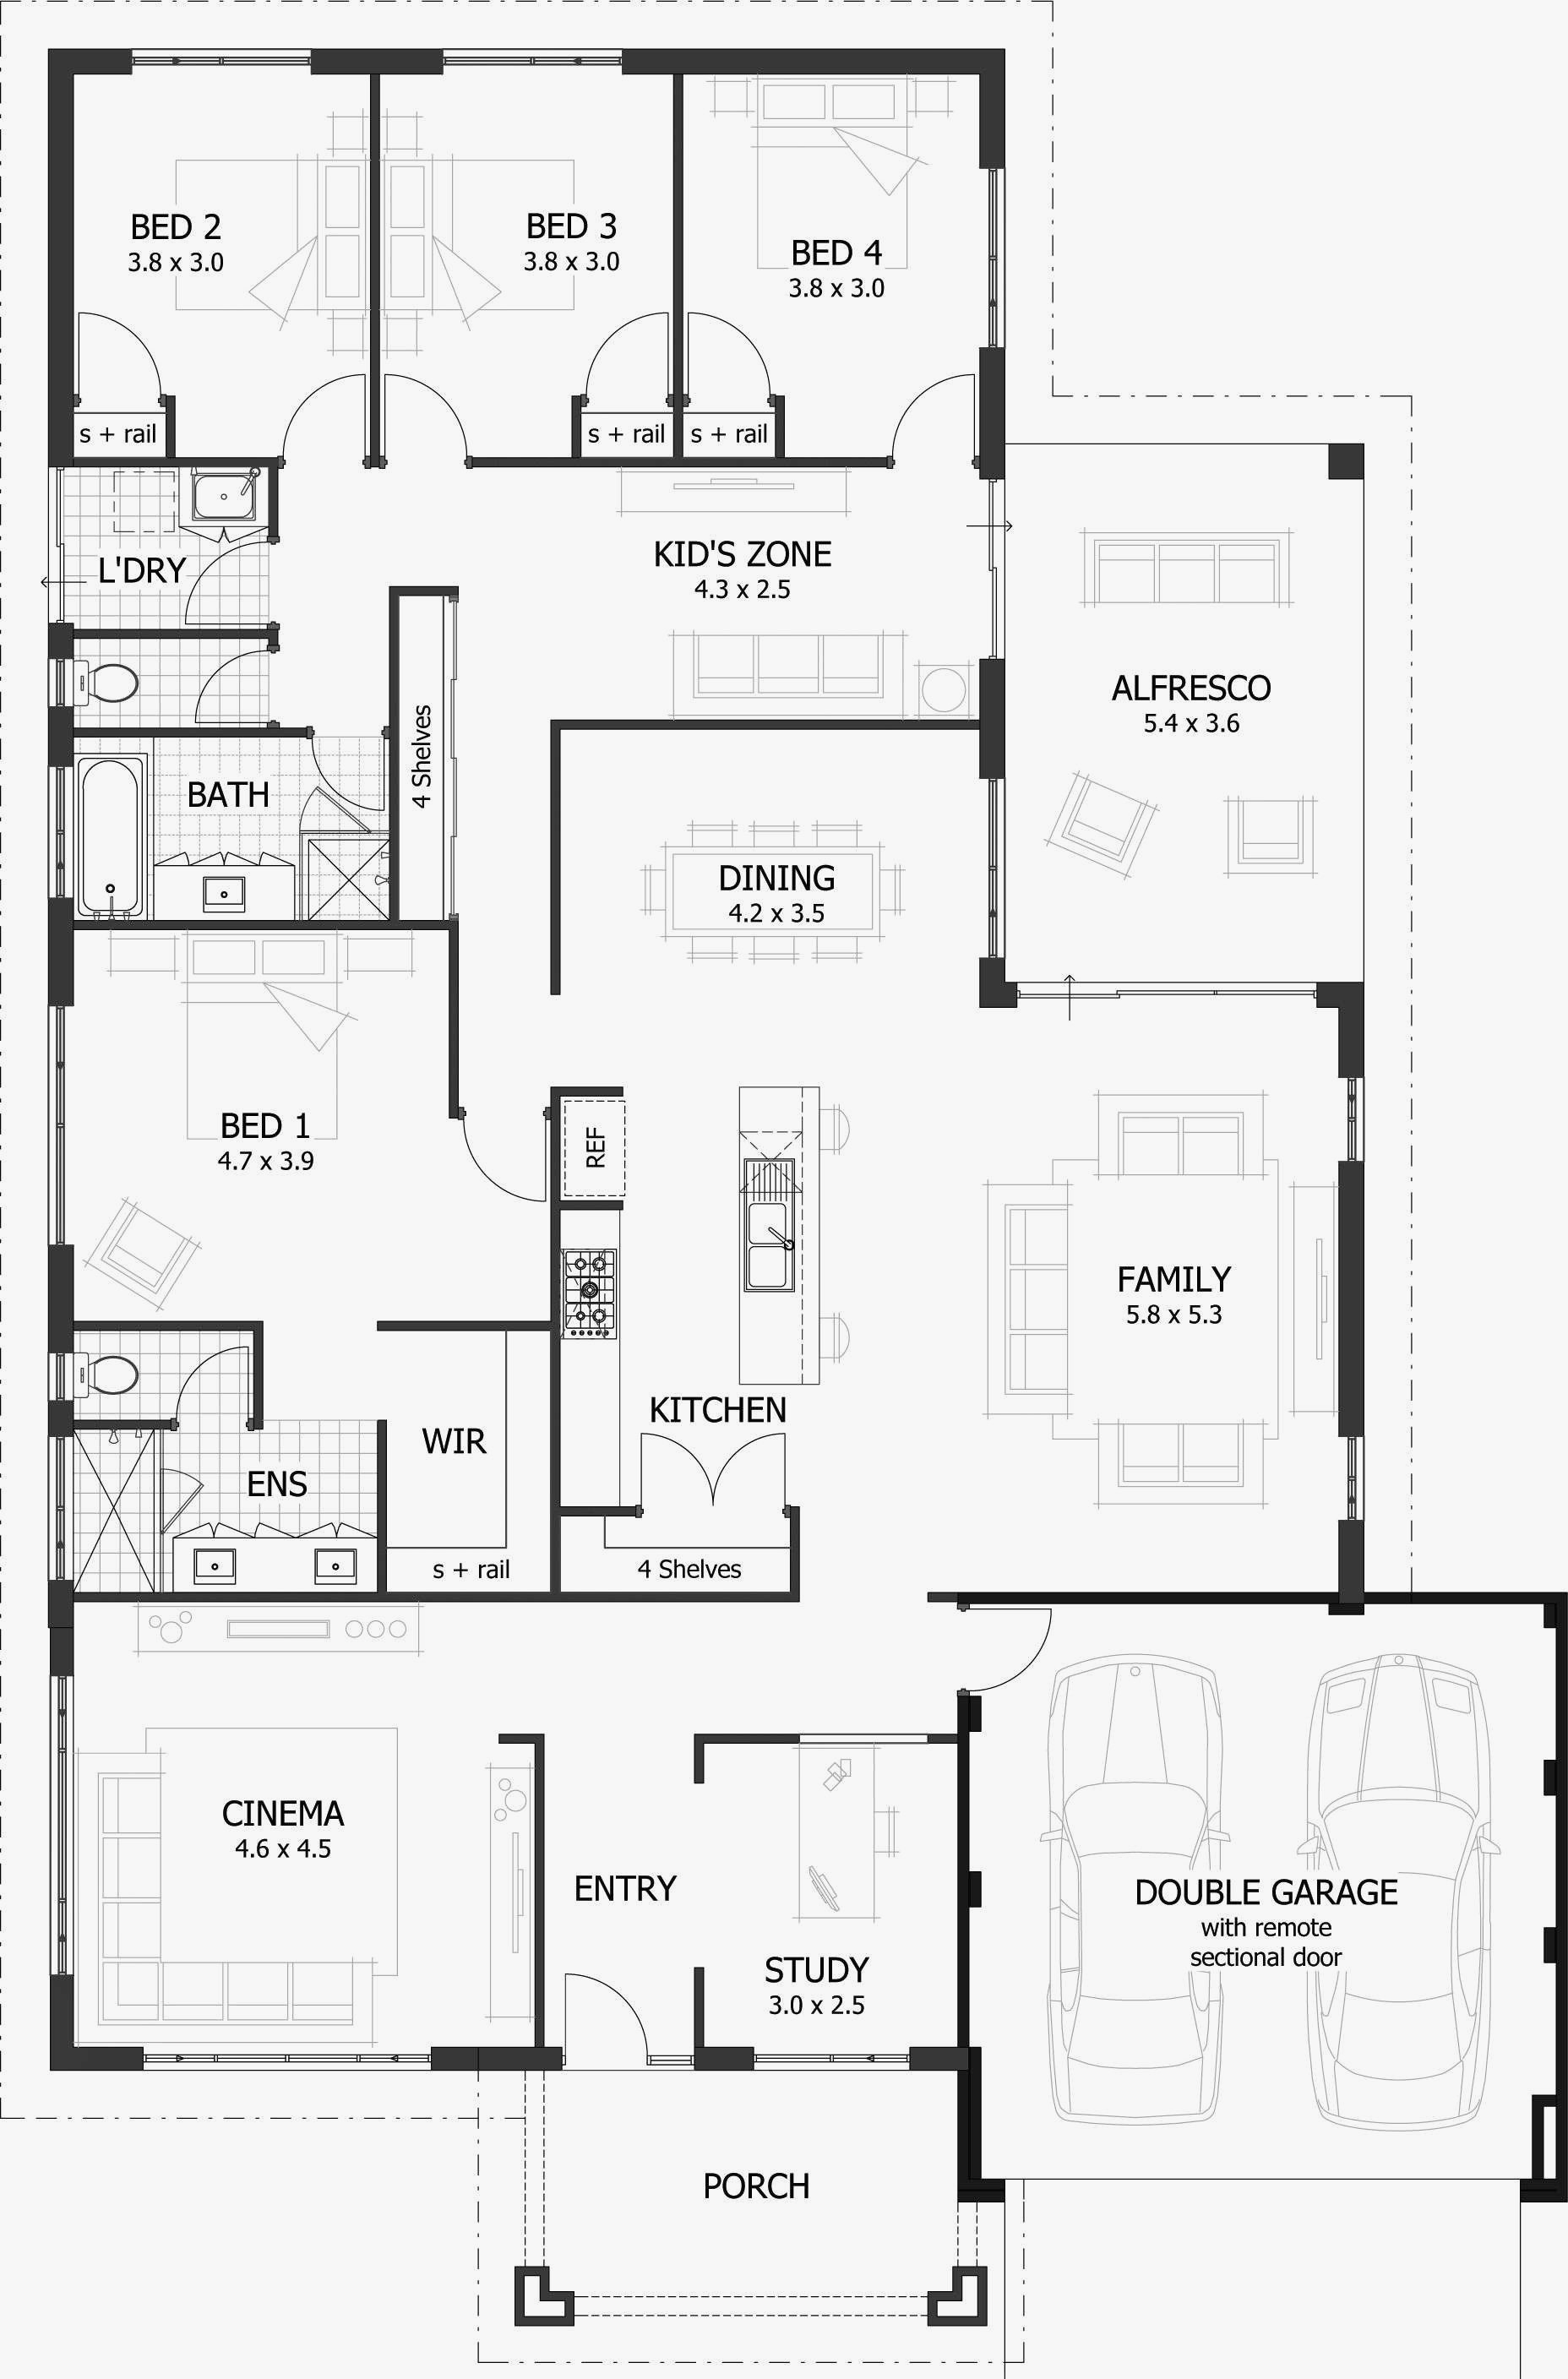 most efficient floor plans fresh katrina house plan luxury katrina cottages floor plans most energy efficient house plans with of most efficient floor plans